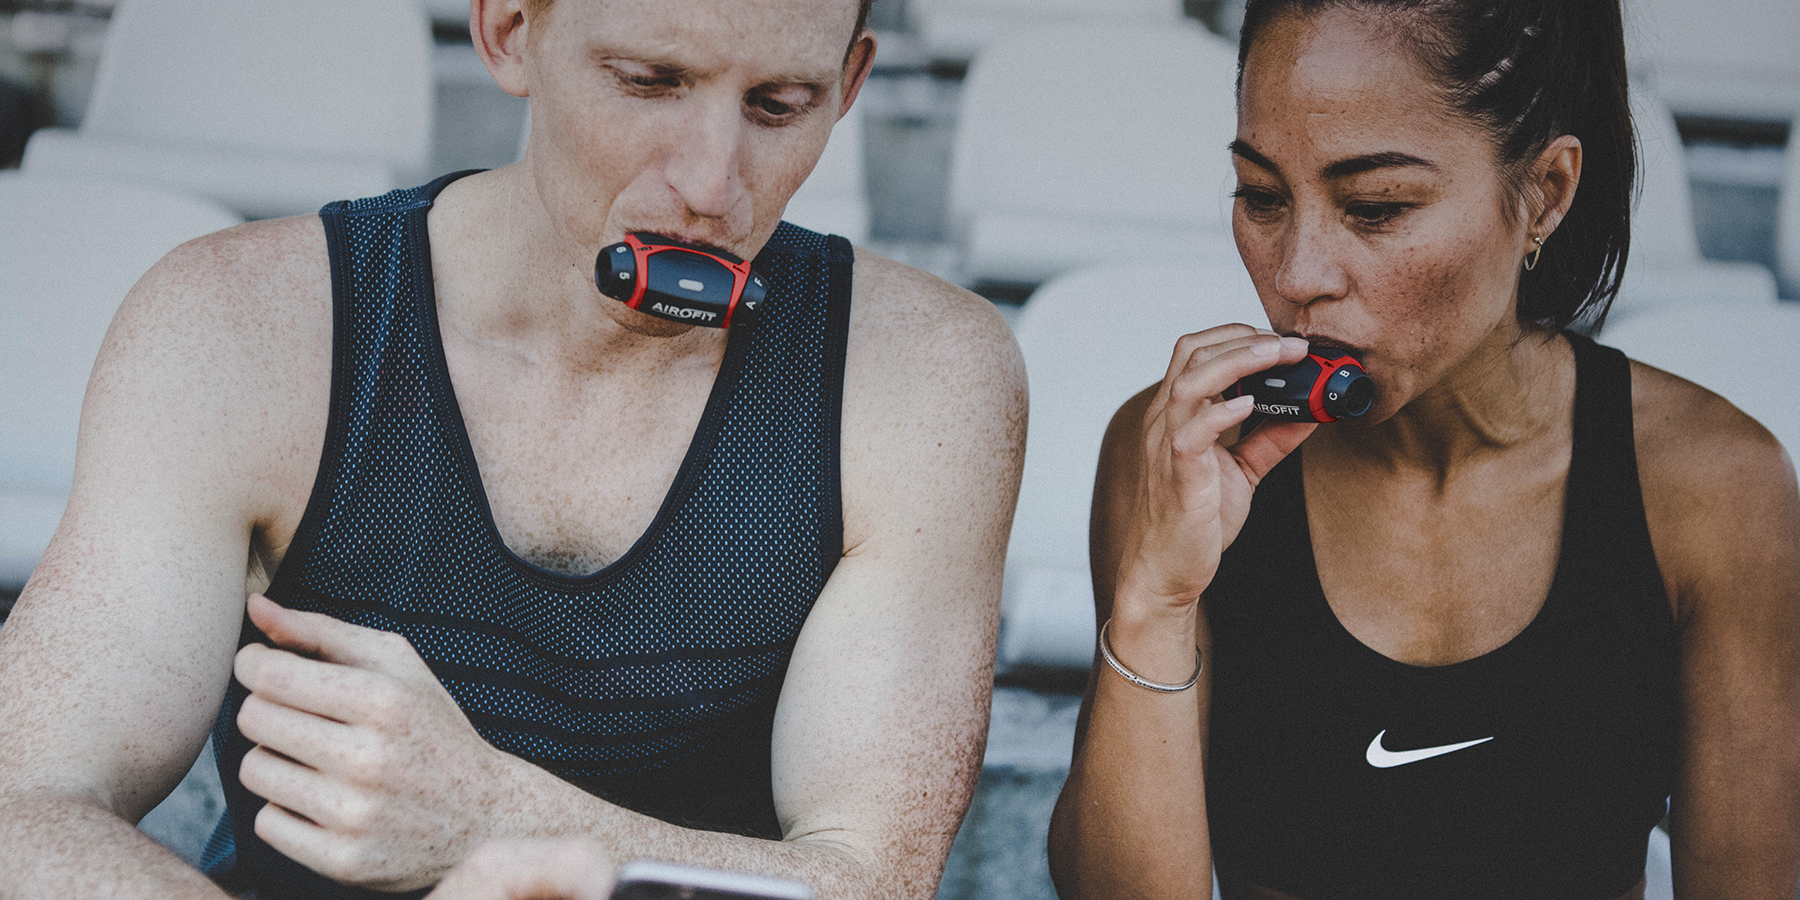 Airofit Breathing trainer - Respiratory training device designed to improve your performance